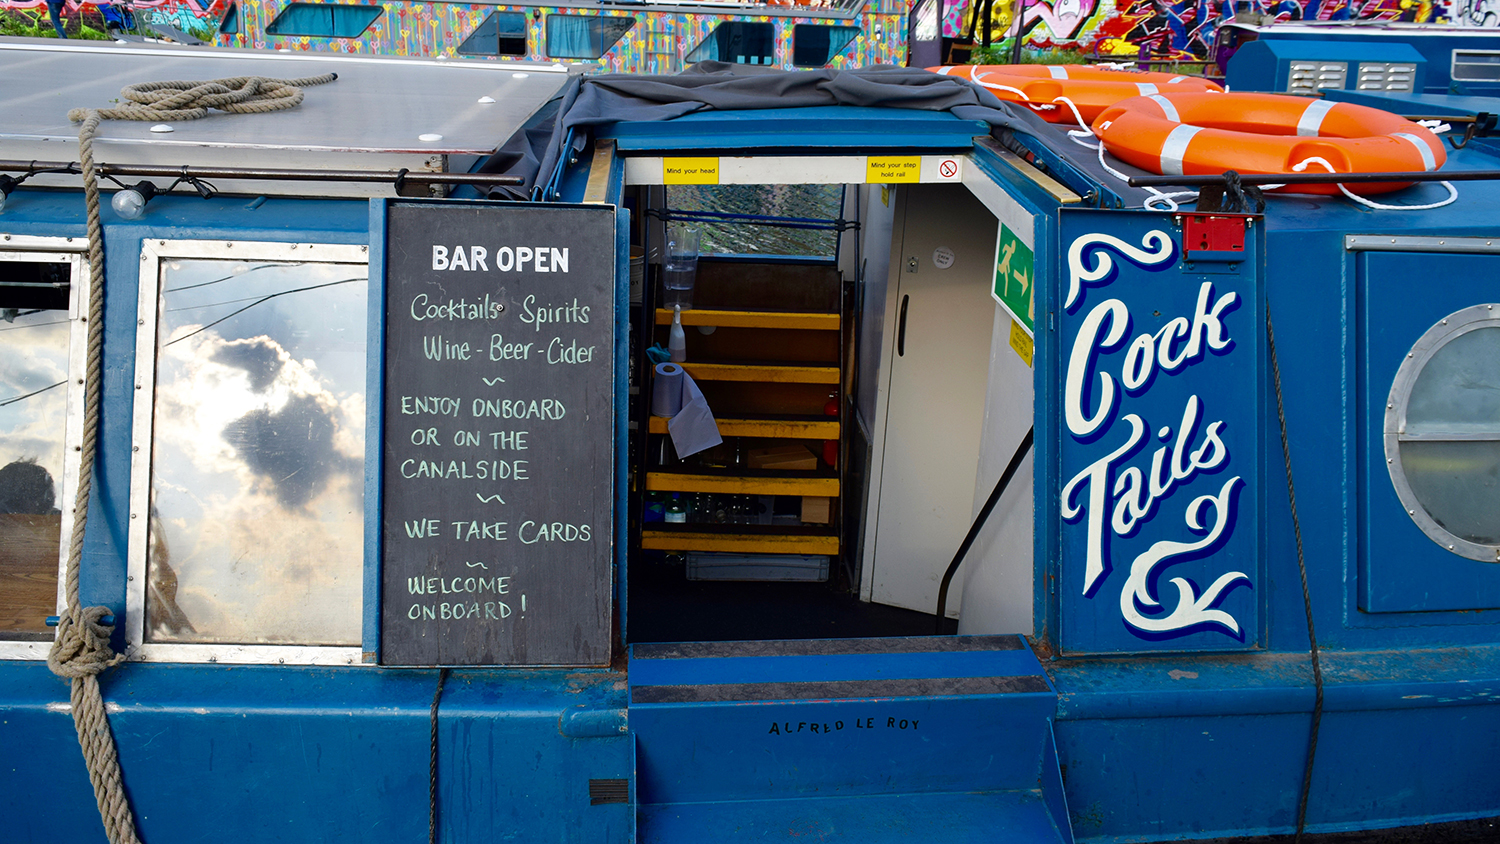 bar open in london boat dining